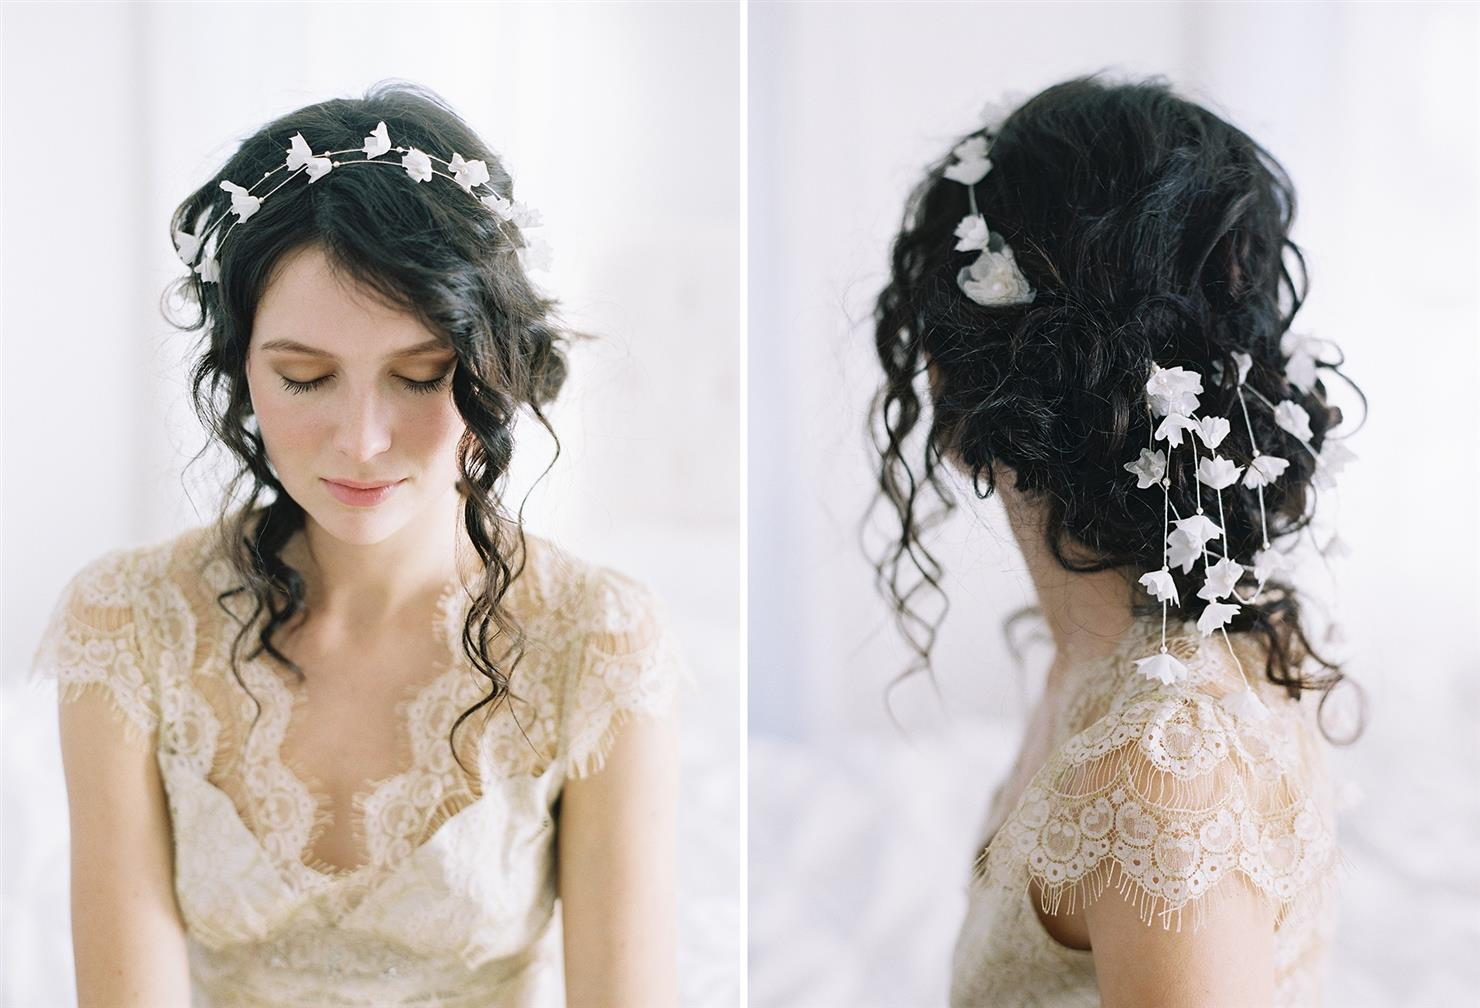 The 2015 Collection of Simply Sublime Bridal Hair Accessories from Erica Elizabeth Designs